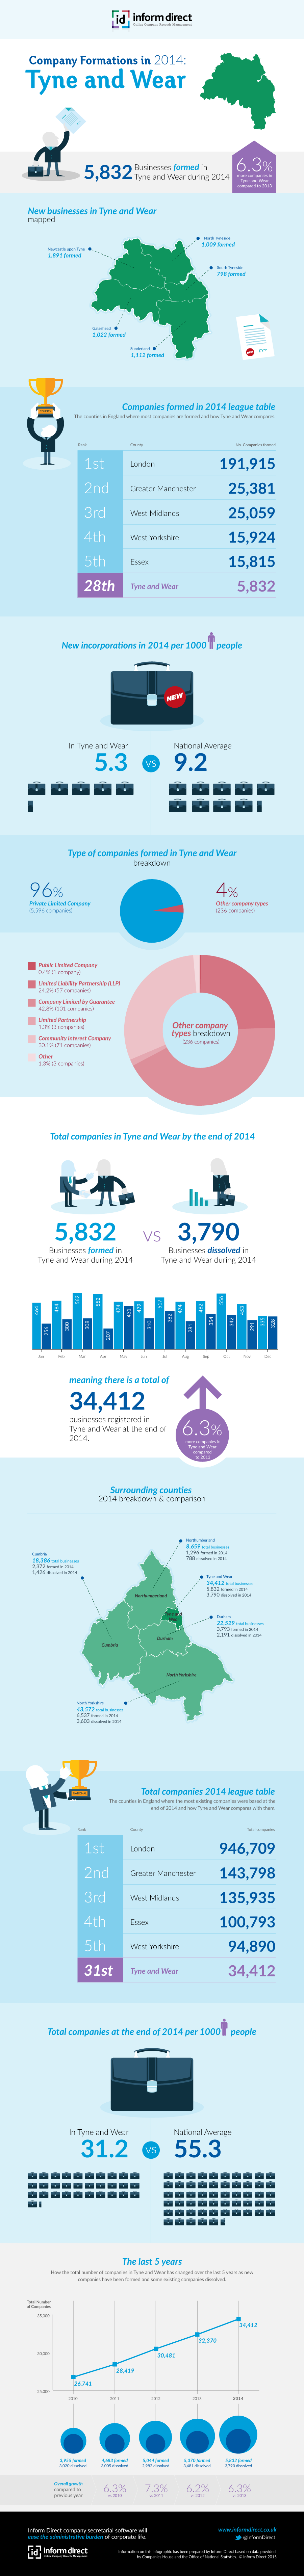 Inform Direct - Company Formations in Tyne and Wear 2014 Infographic